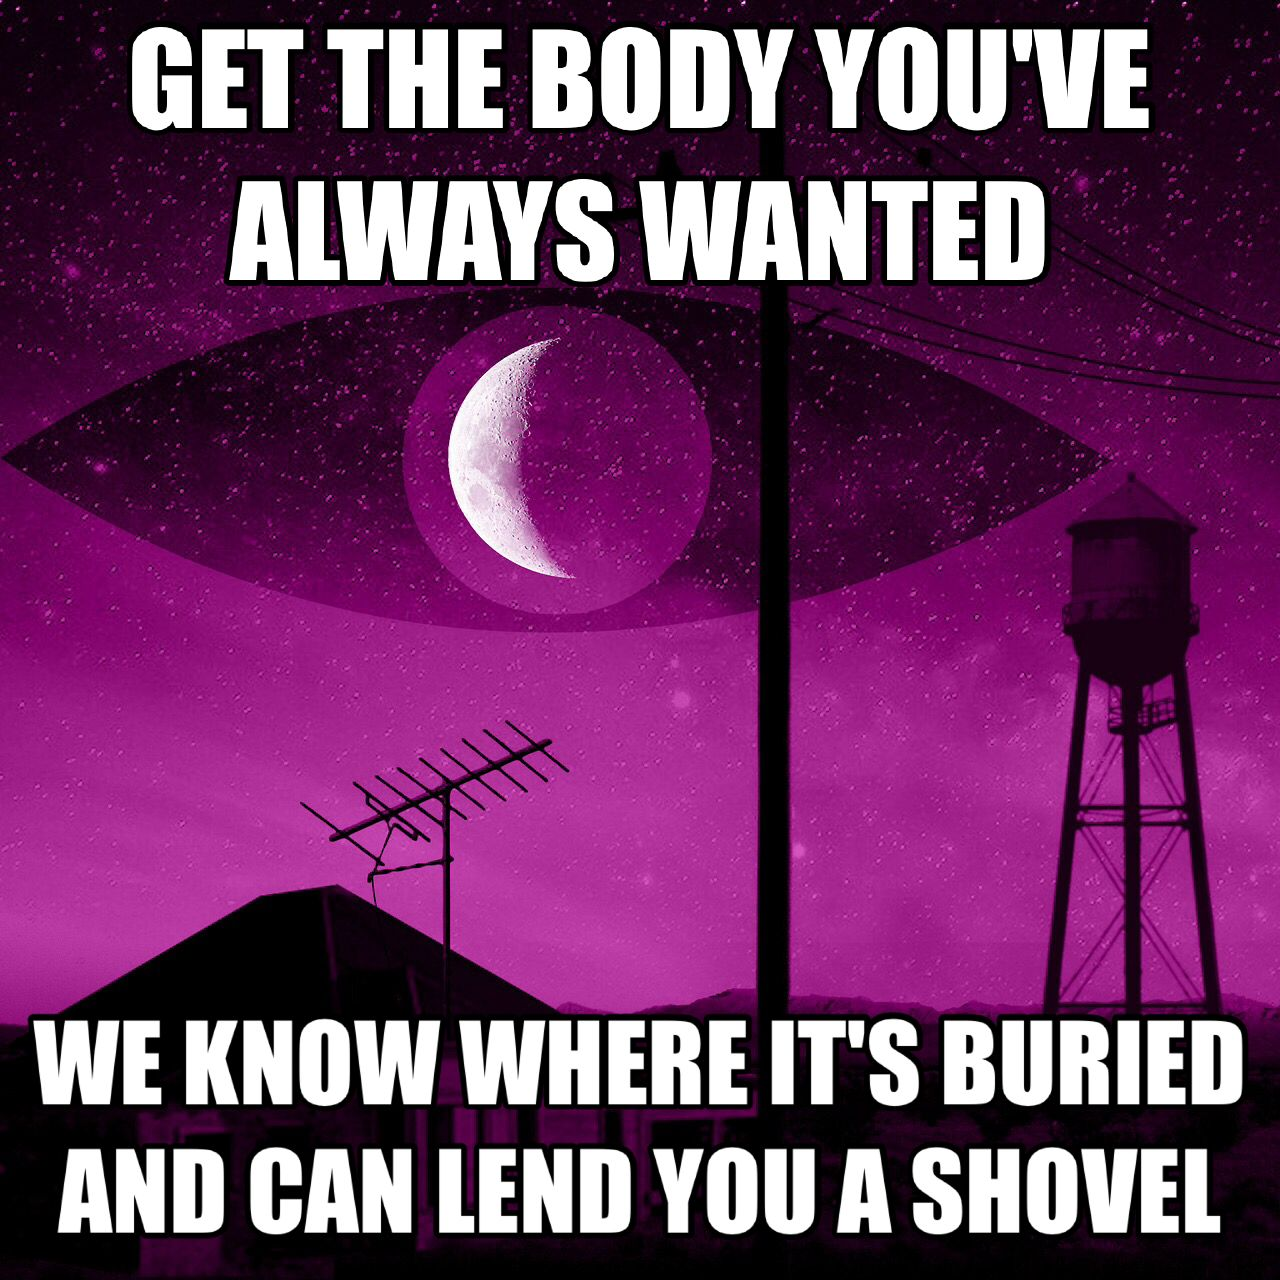 Get the body you've always wanted. We know where it's buried and can lend you a shovel. #nightvale